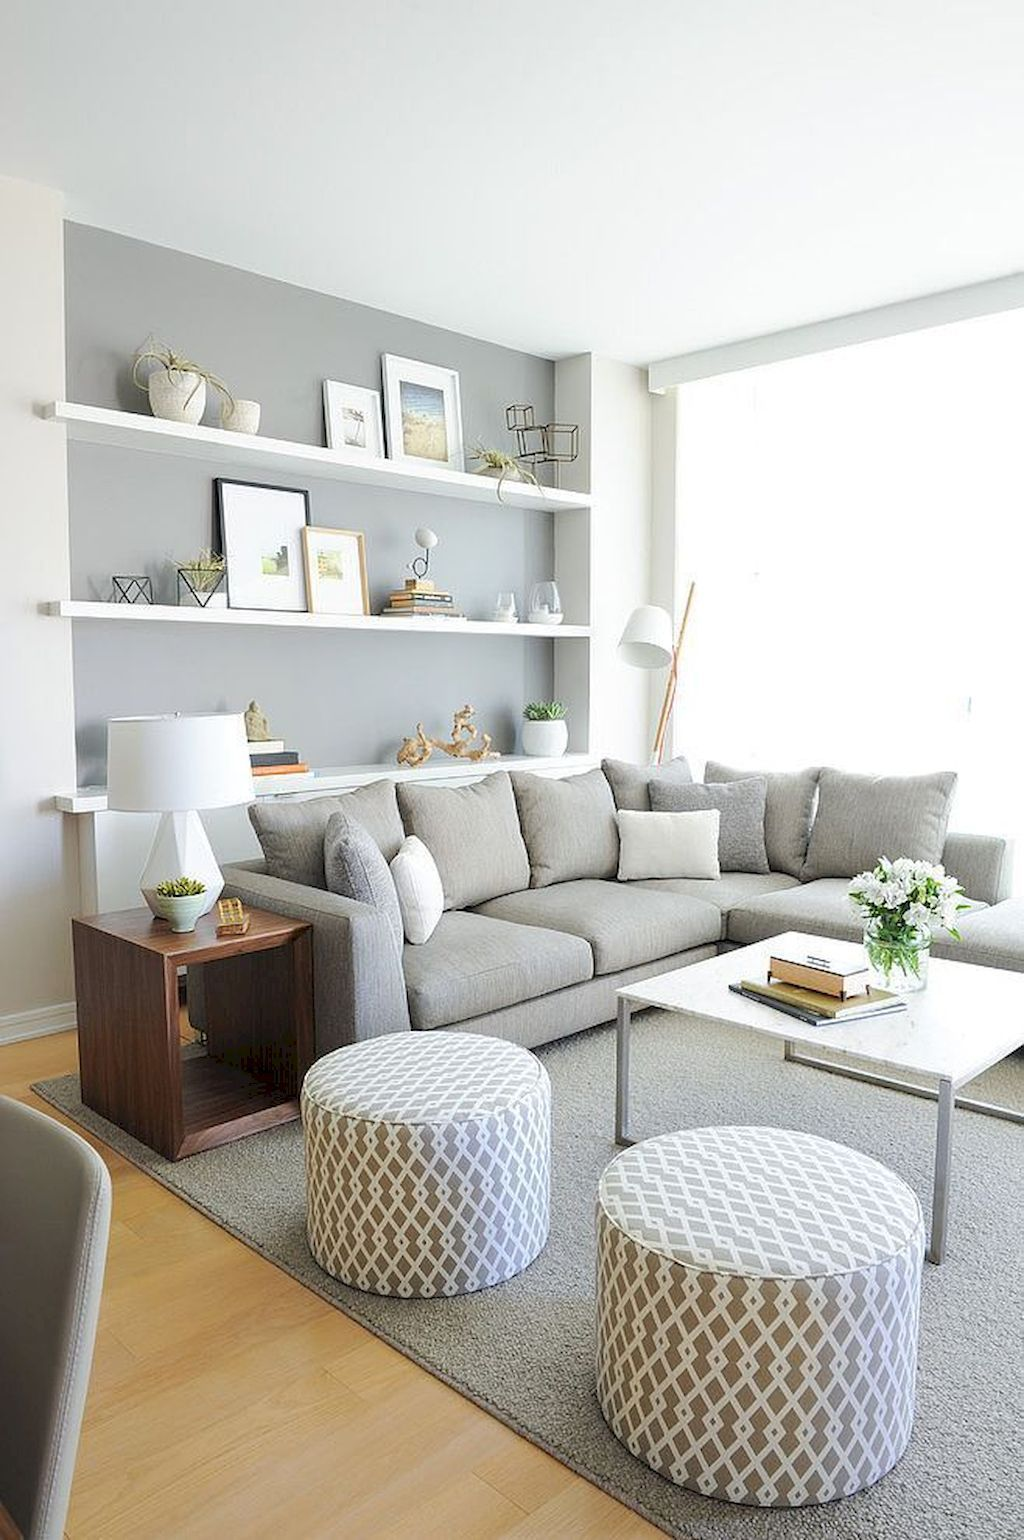 55 Modern Small Living Room Decor Ideas | Small living rooms, Small ...